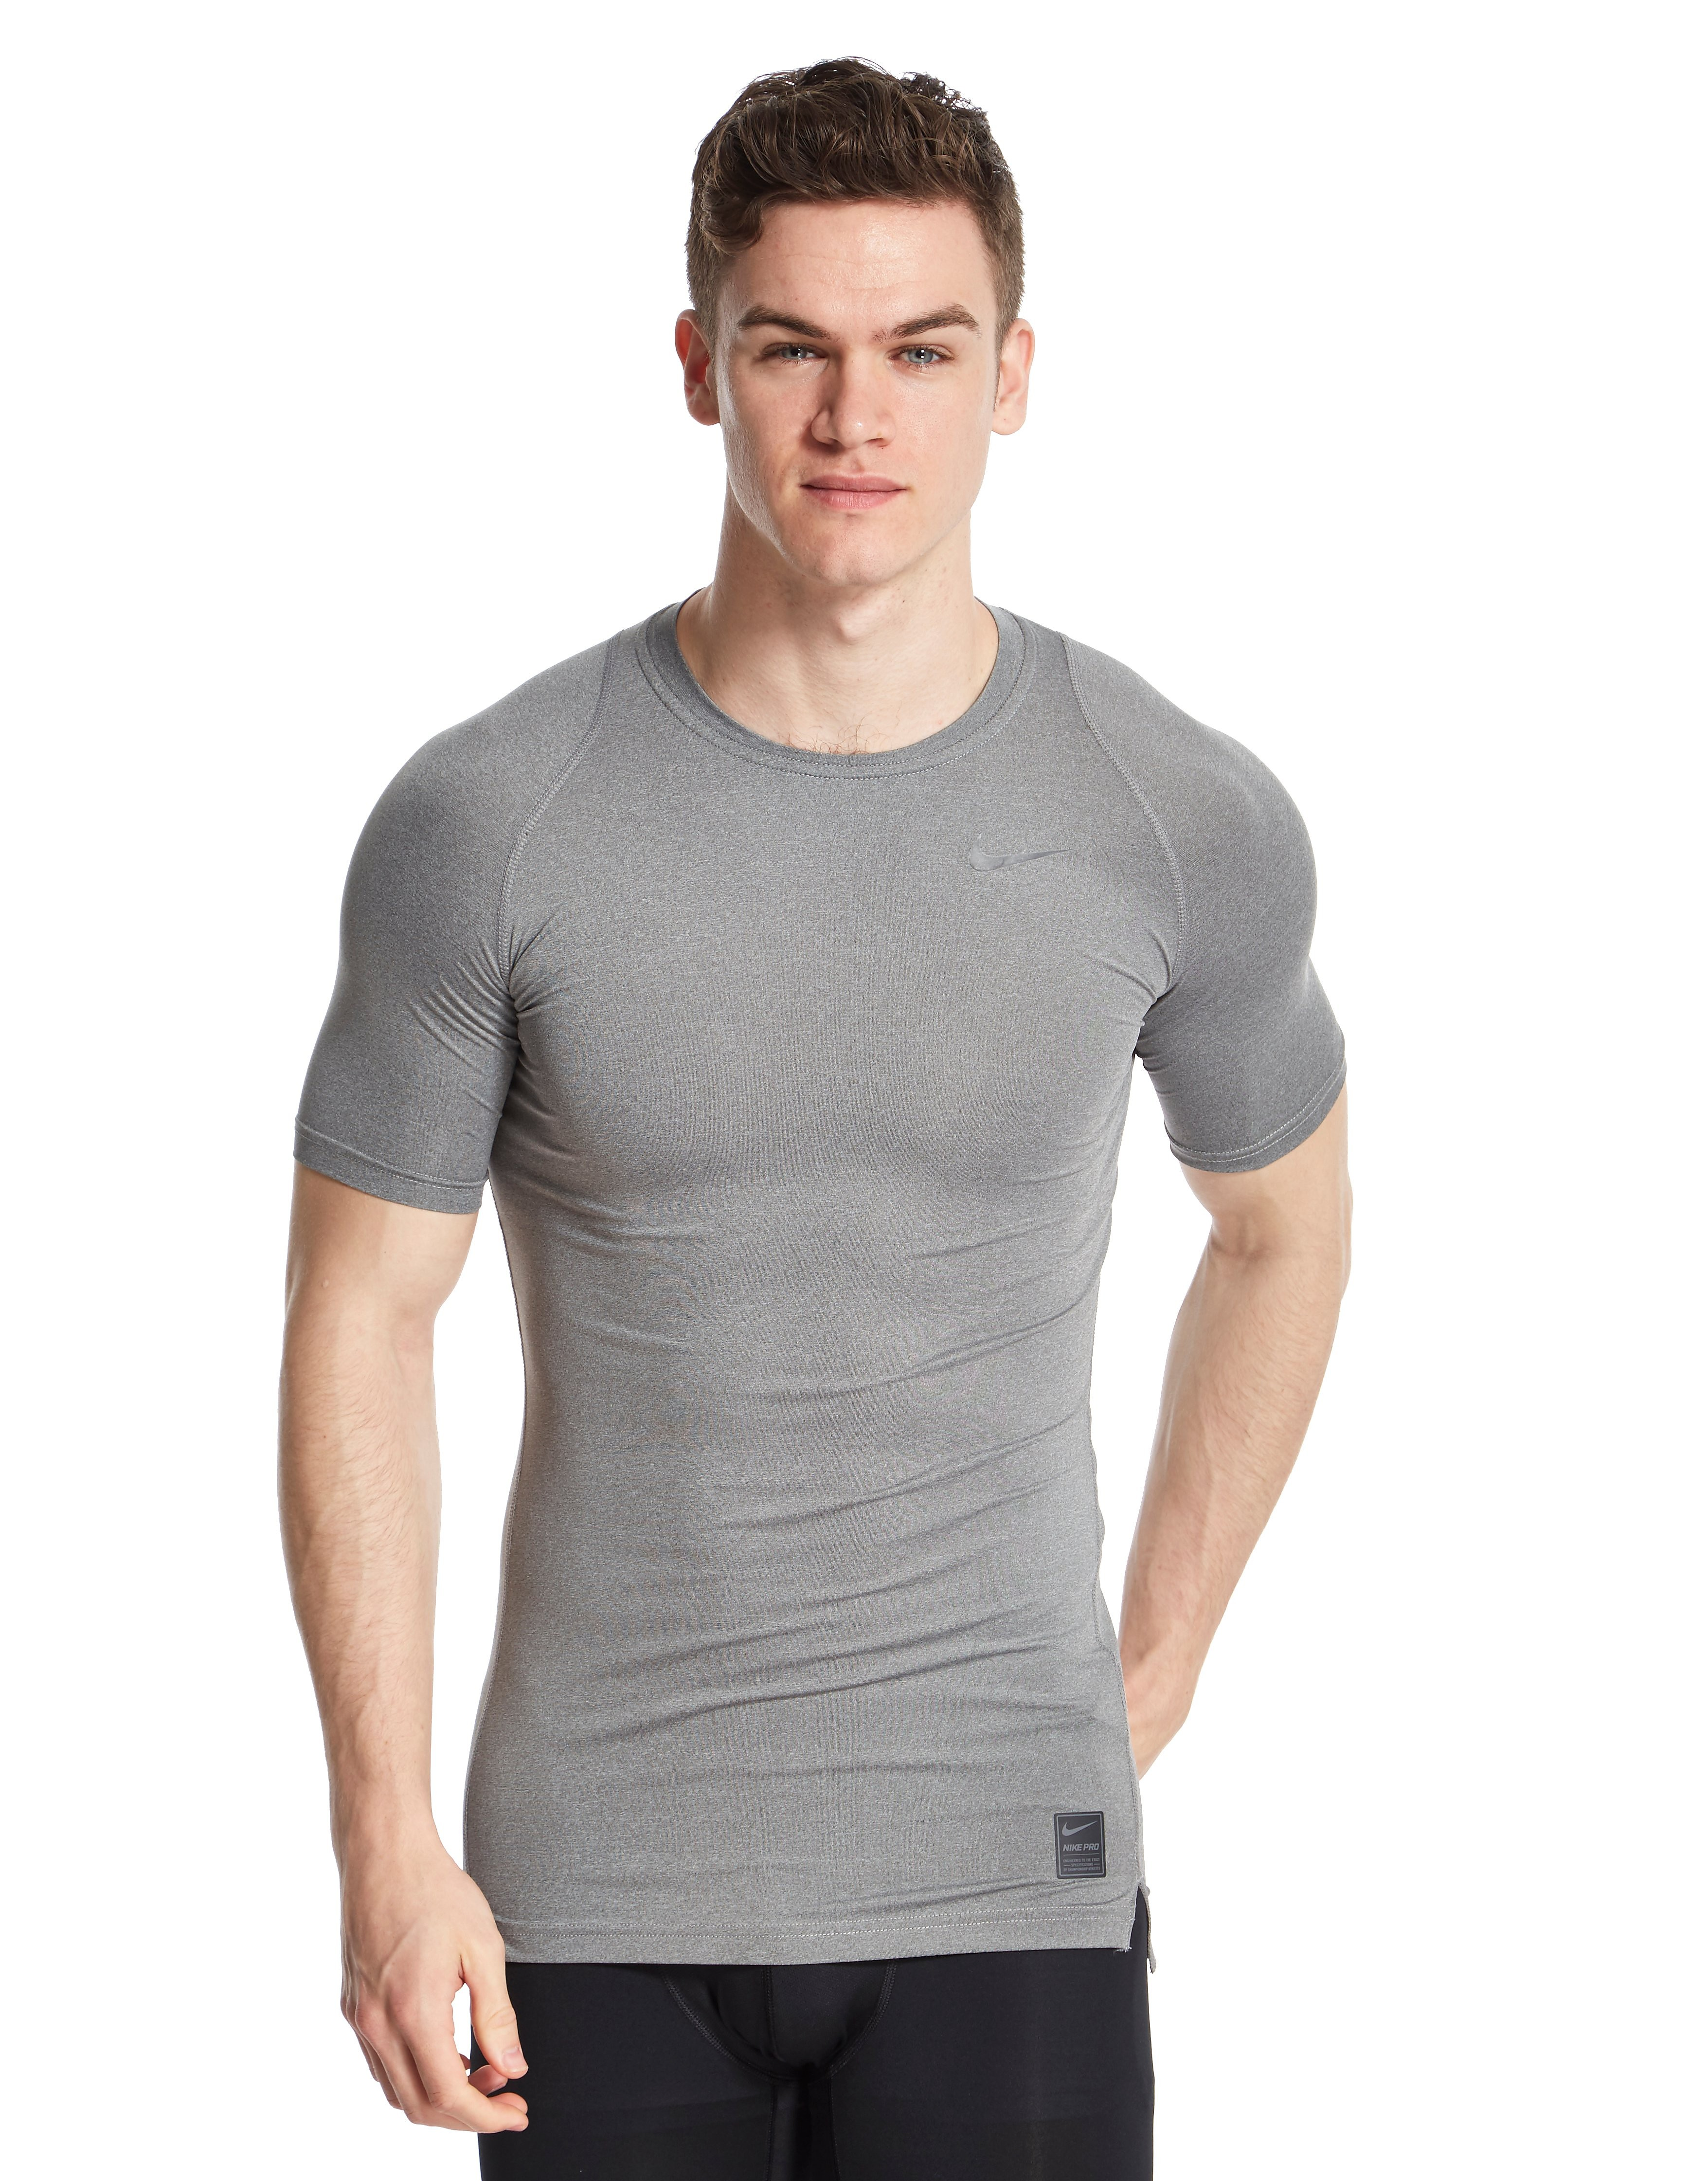 Nike Pro Cool Compression T-Shirt